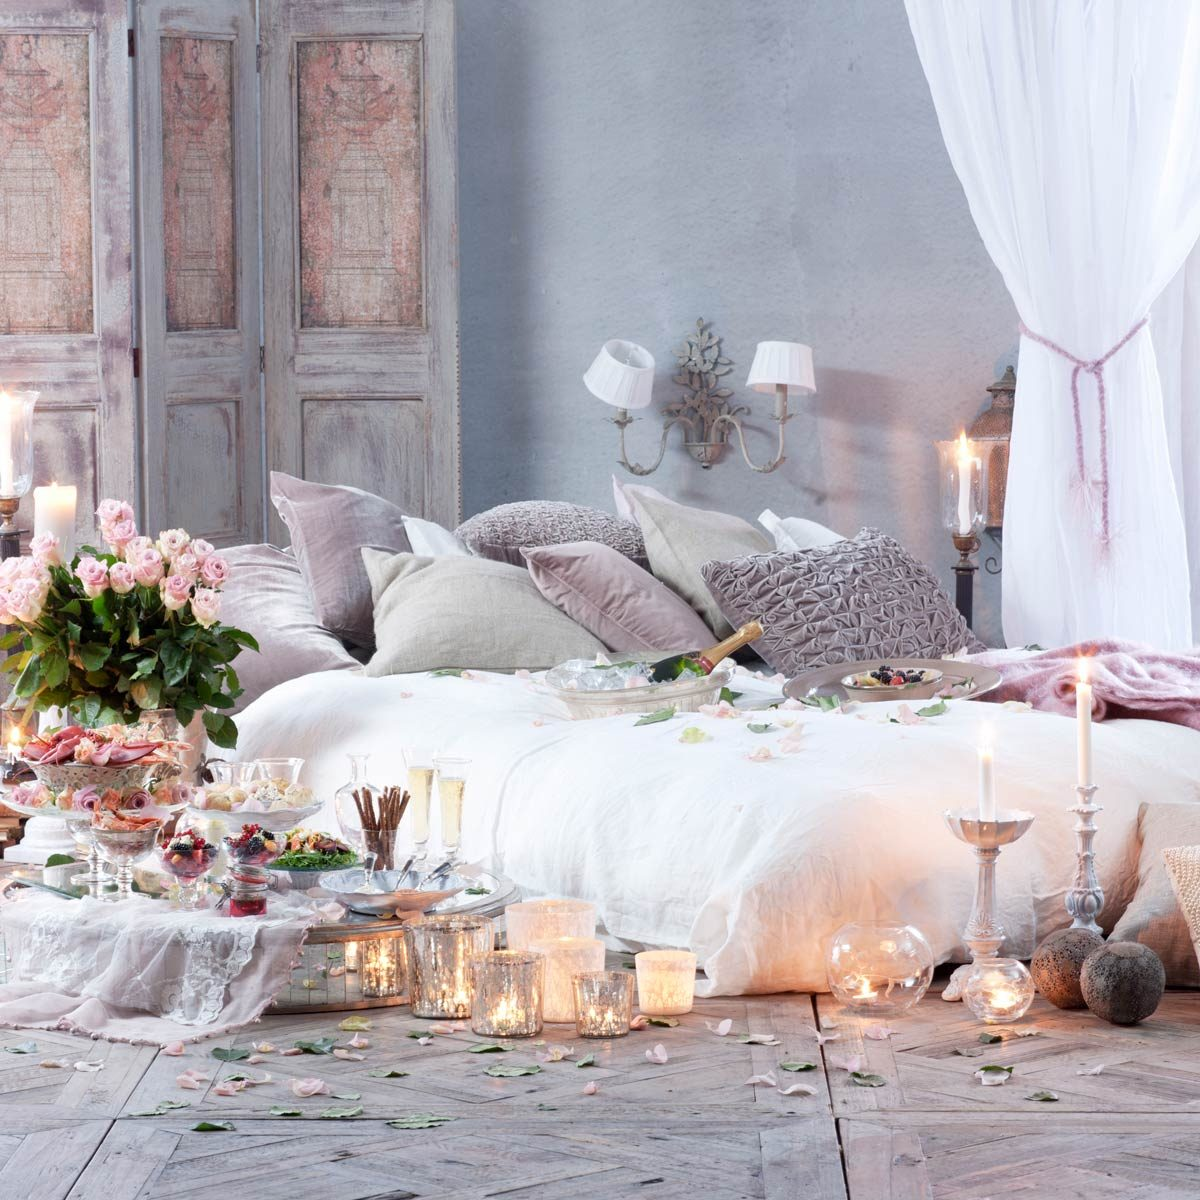 romantic candle lit bedroom Romantic meal in bedroom Gettyimages 555170255